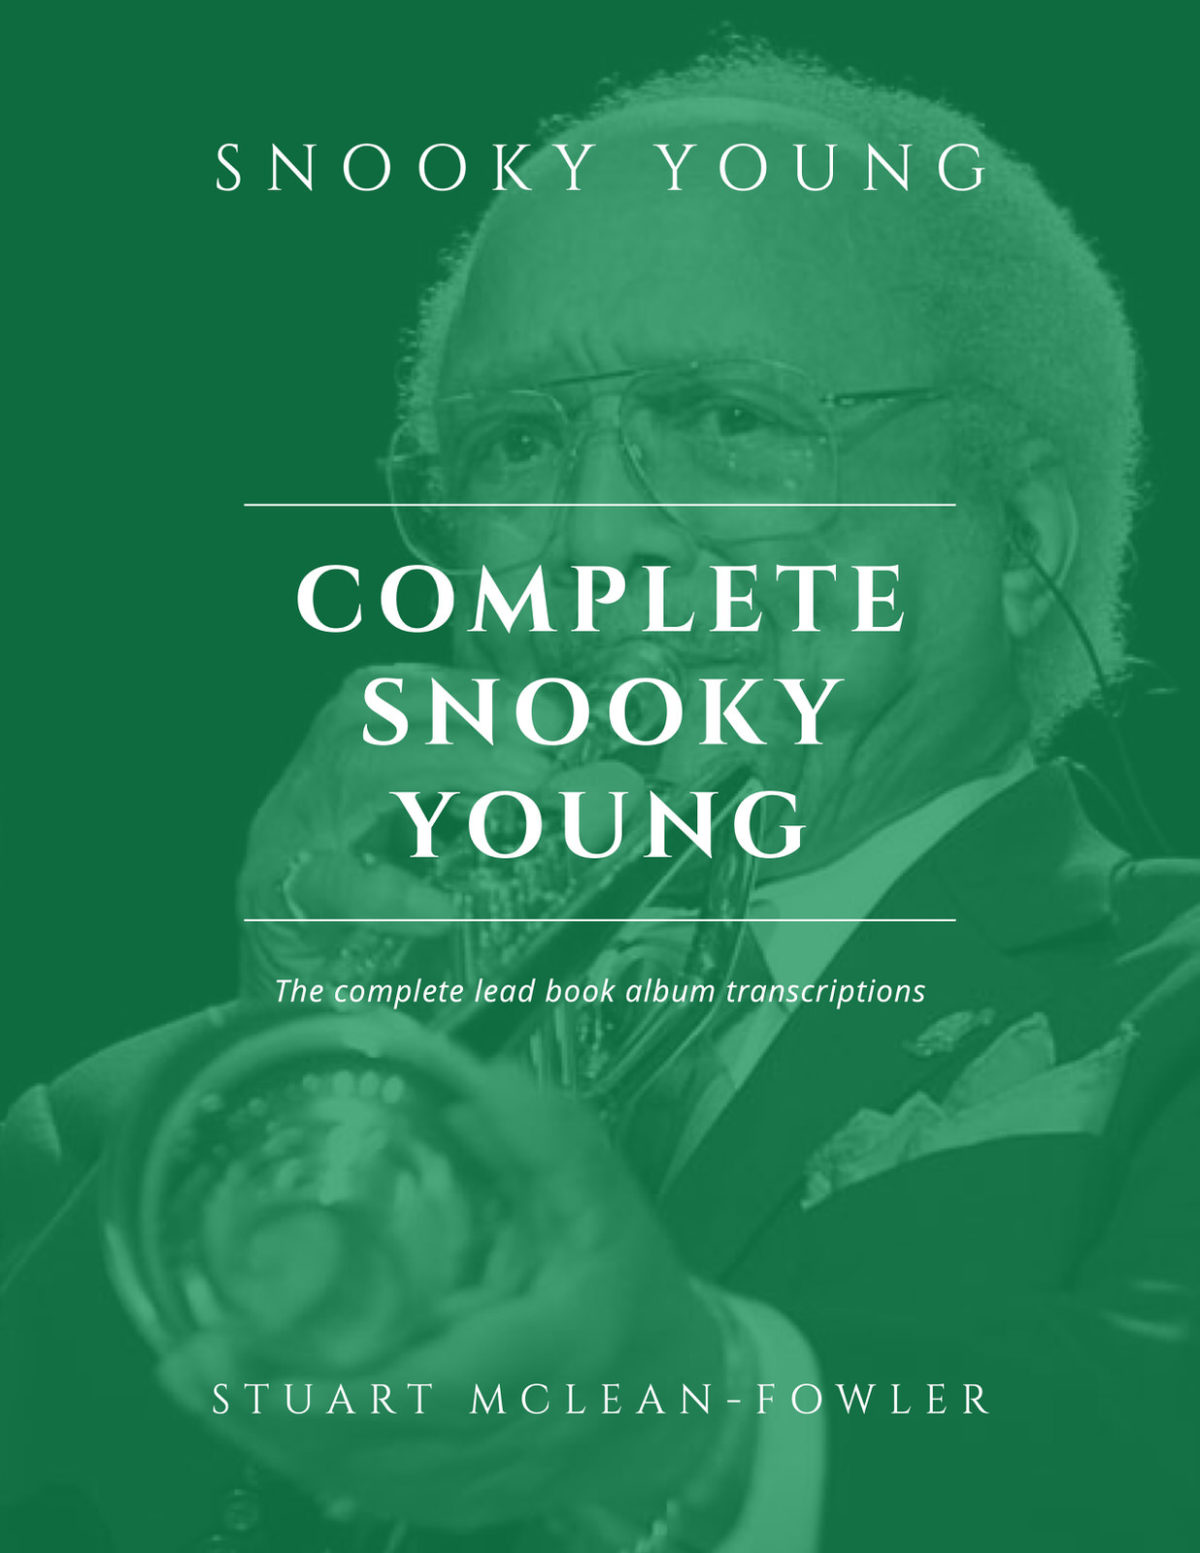 Complete Snooky Young